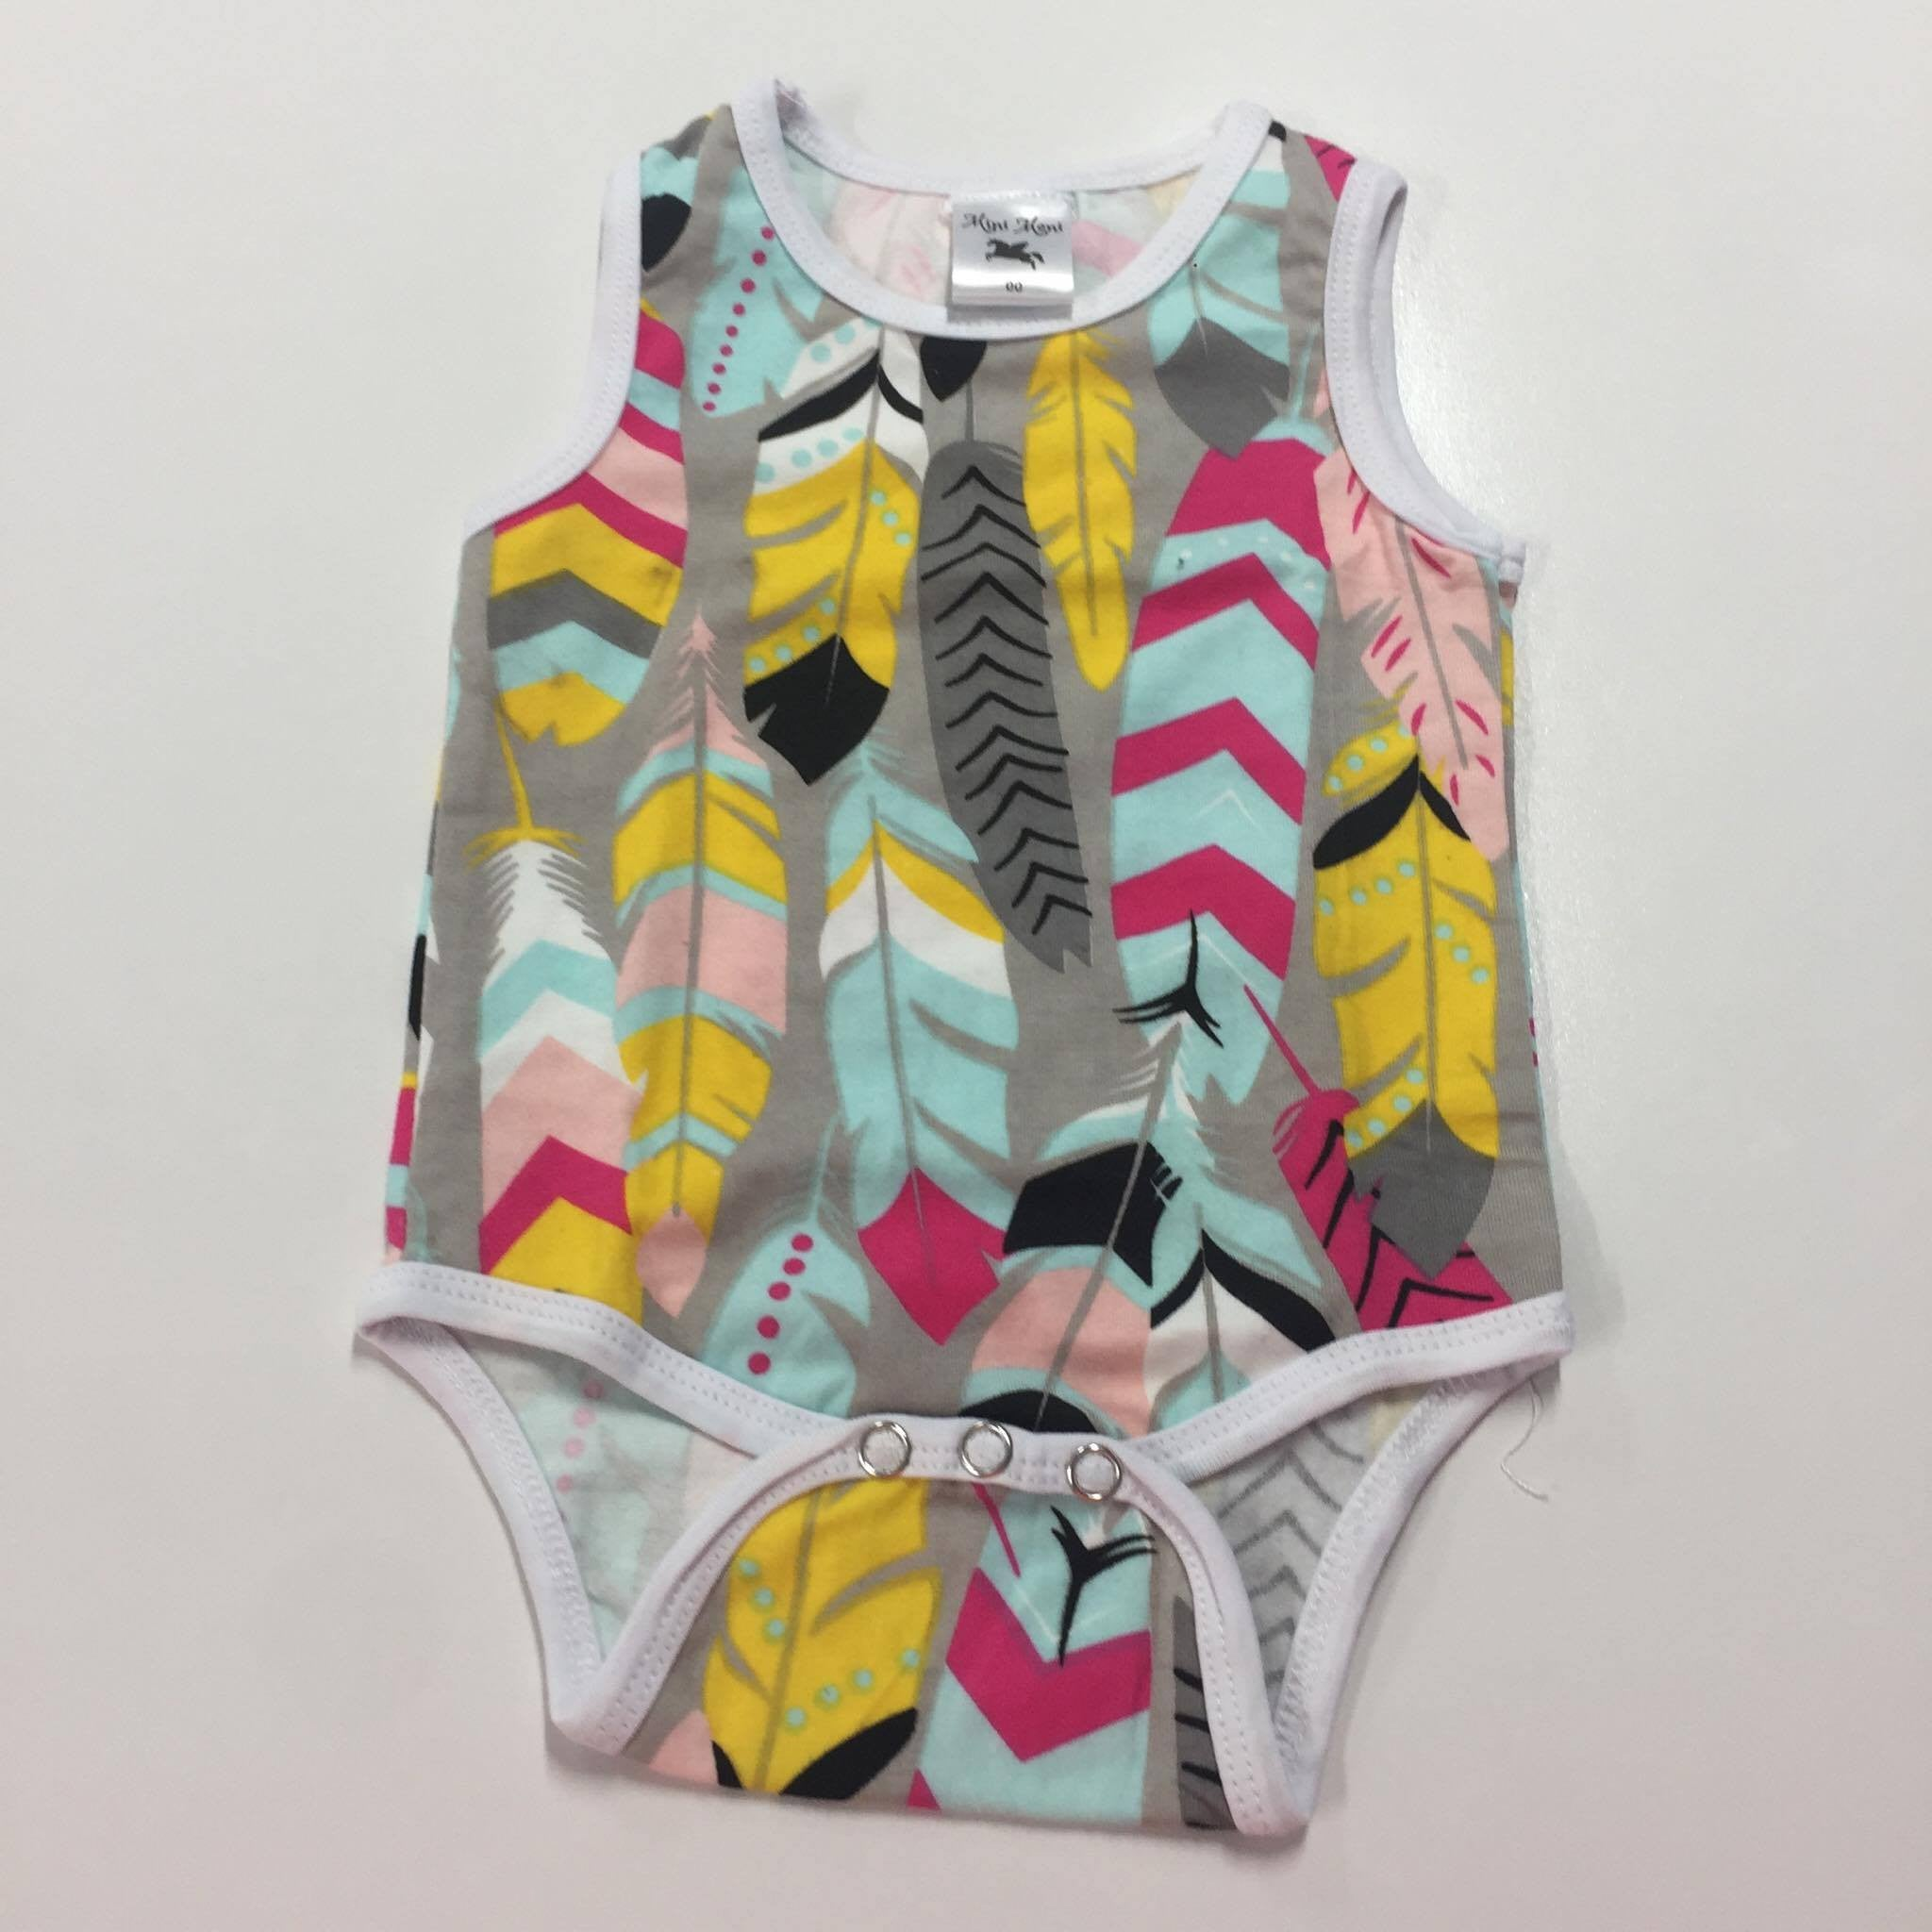 Cotton Spandex Bodysuits - Patterned Short Sleeve